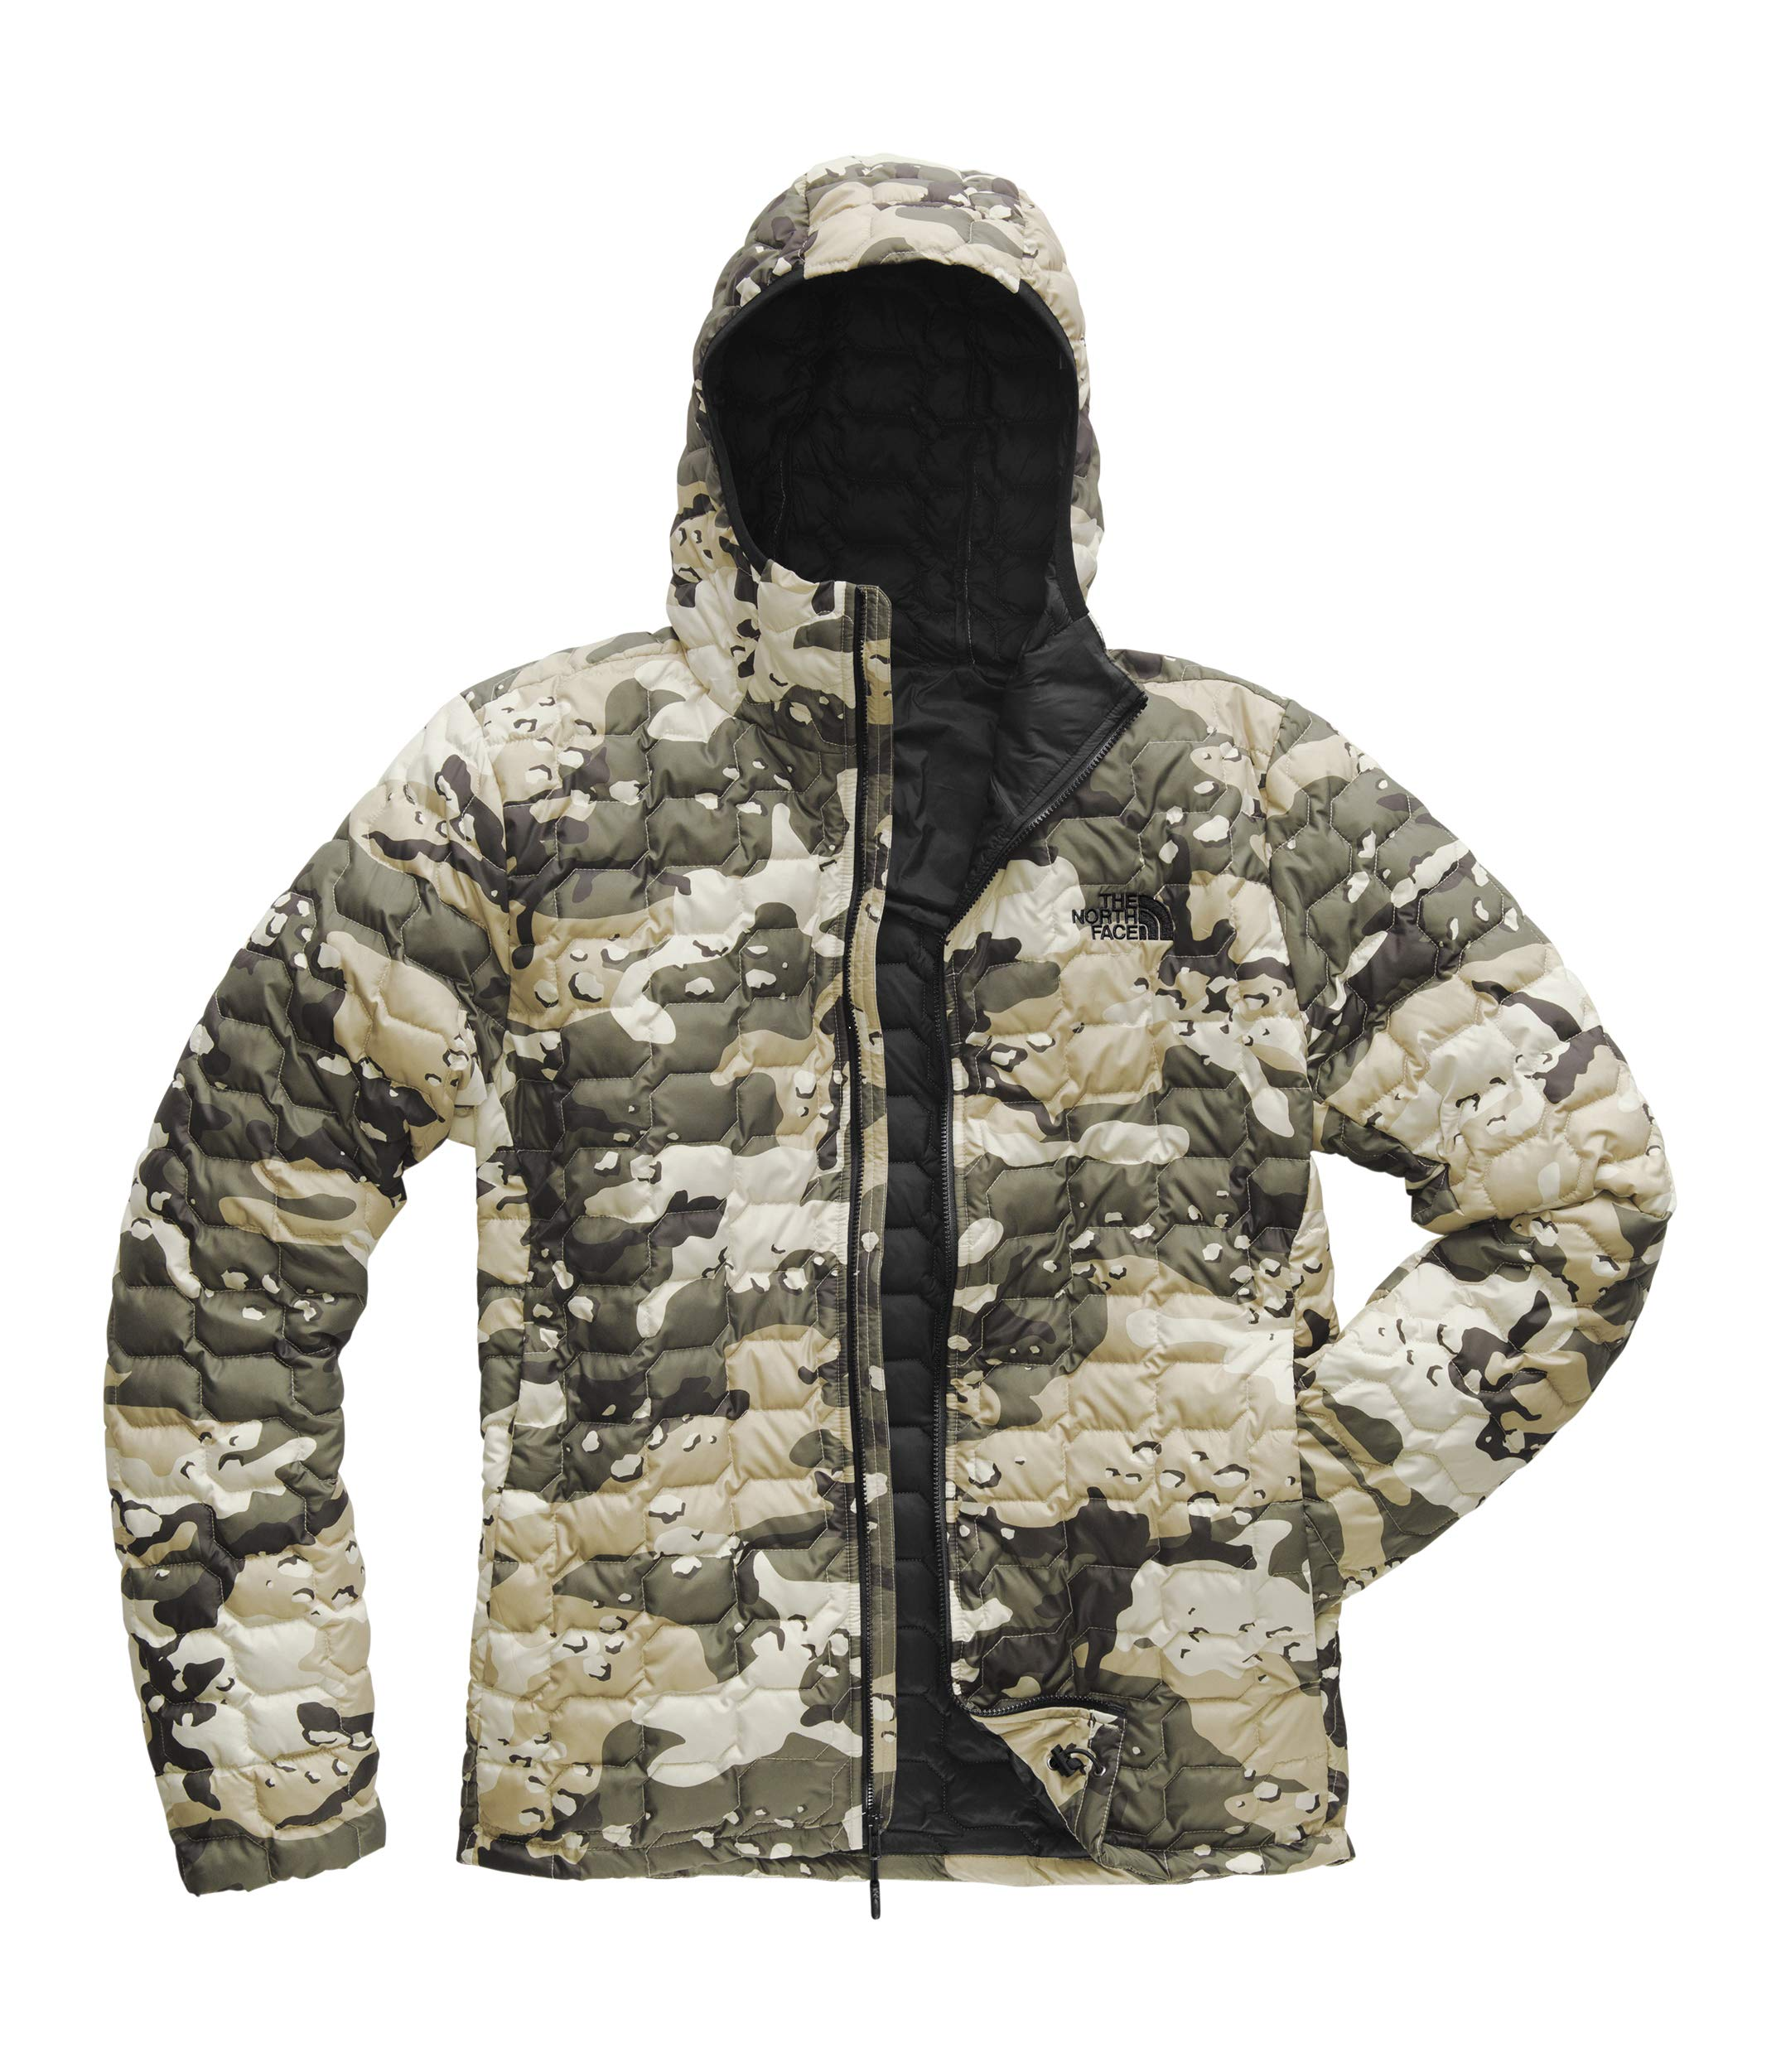 The North Face Men's Thermoball Hoodie Peyote Beige Woodchip Camo Print Small